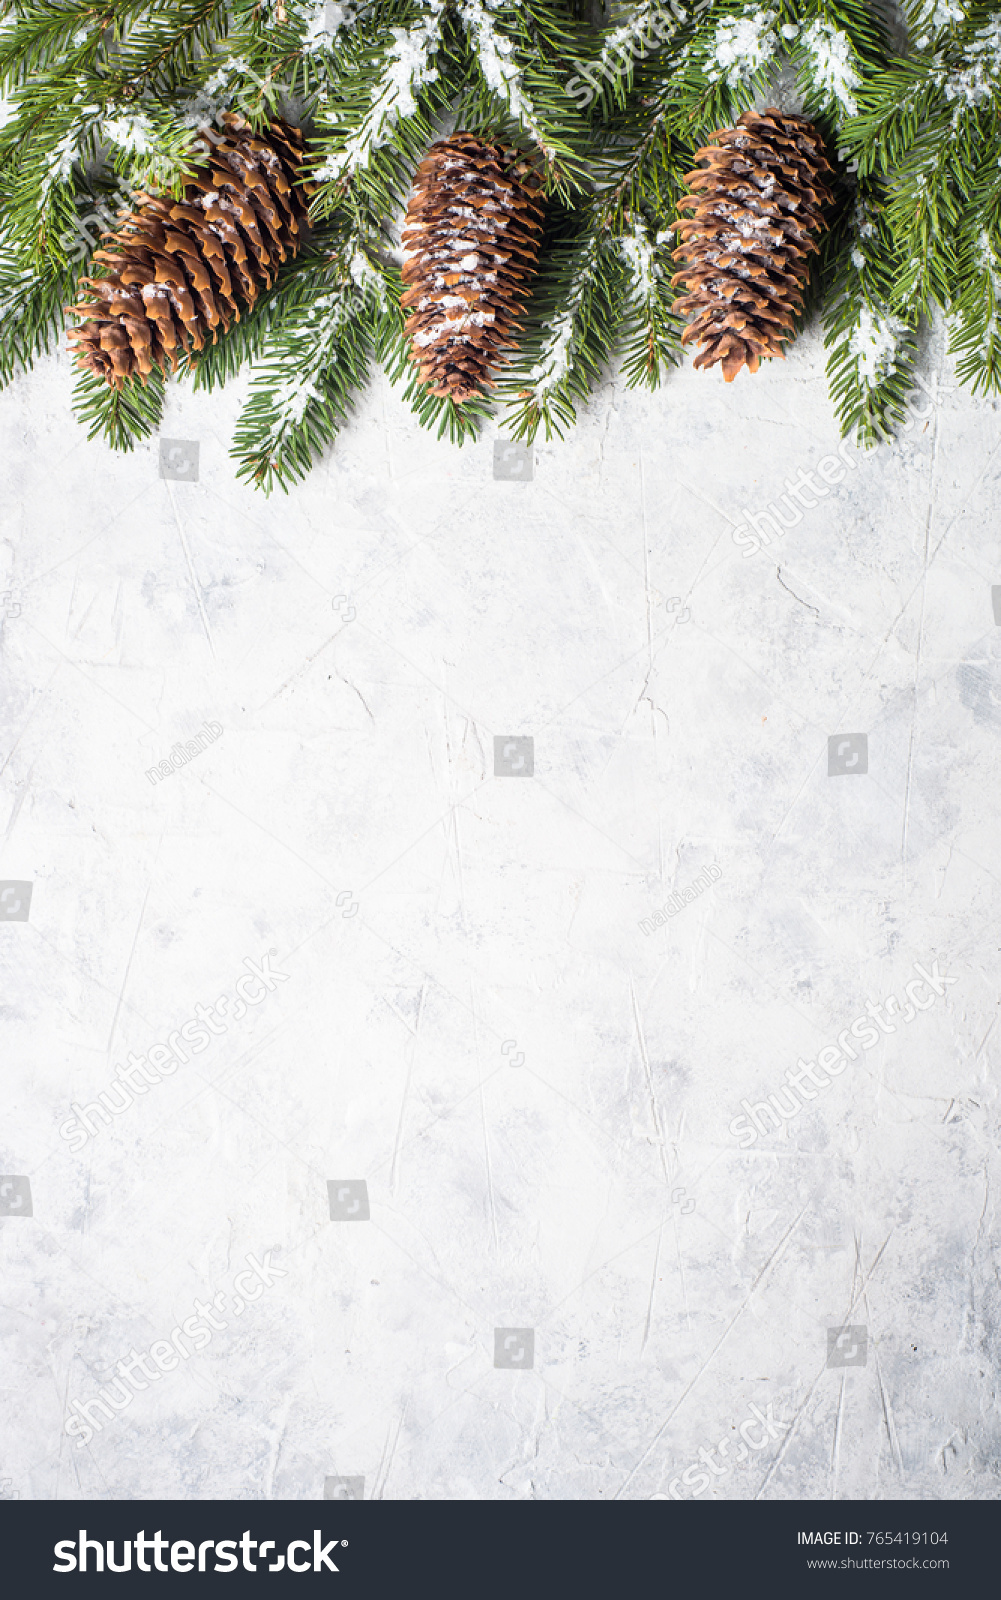 Christmas Background Snow Fir Tree Branch Stock Photo (Edit Now ...